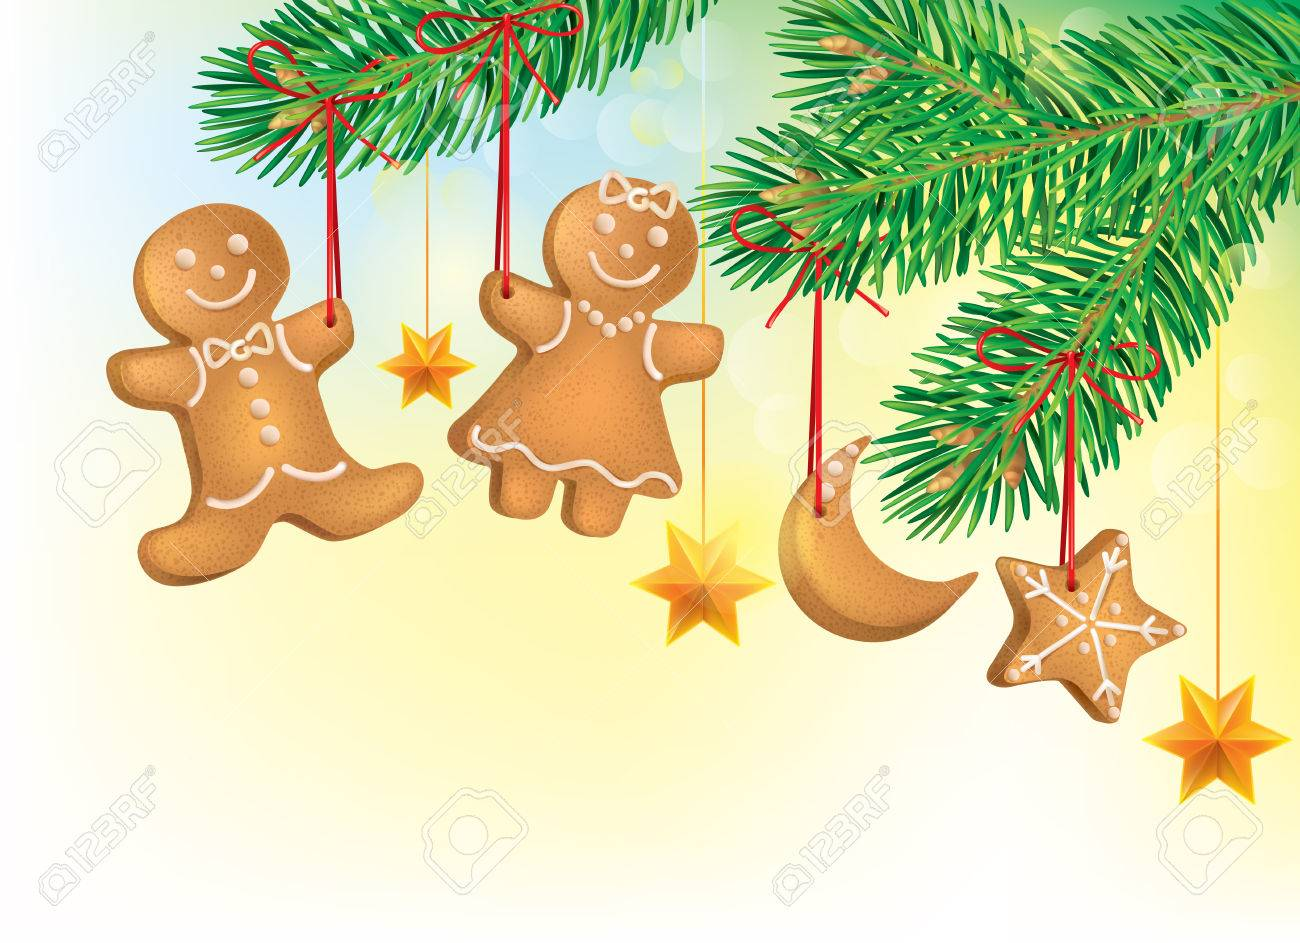 Christmas tree decorated with Christmas cookies. Contains transparent objects. EPS10 Stock Vector - 23470717